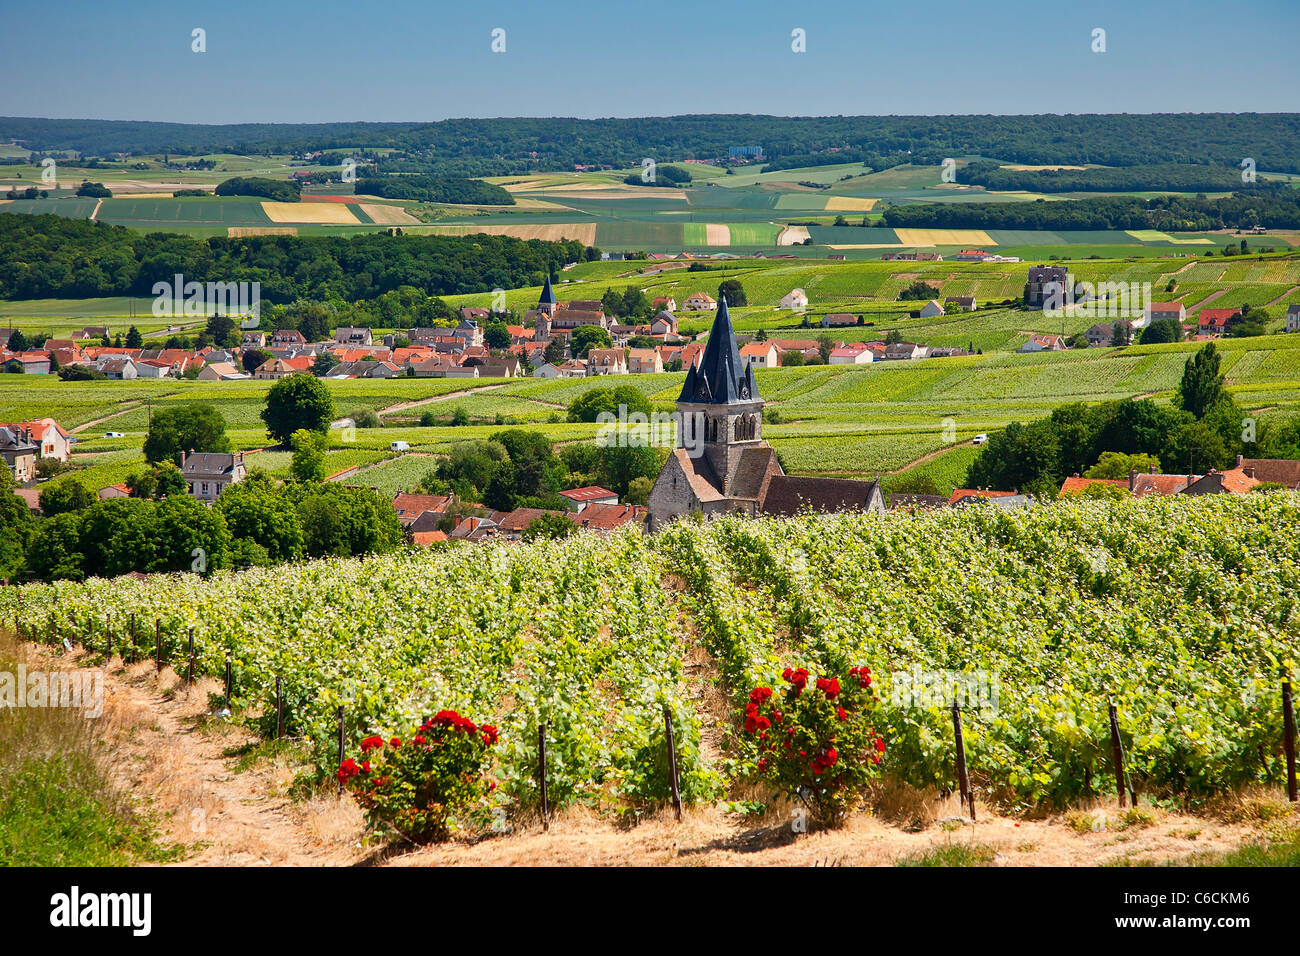 France, Marne, Villedomange, a village close to Reims associated with Champagne wine - Stock Image